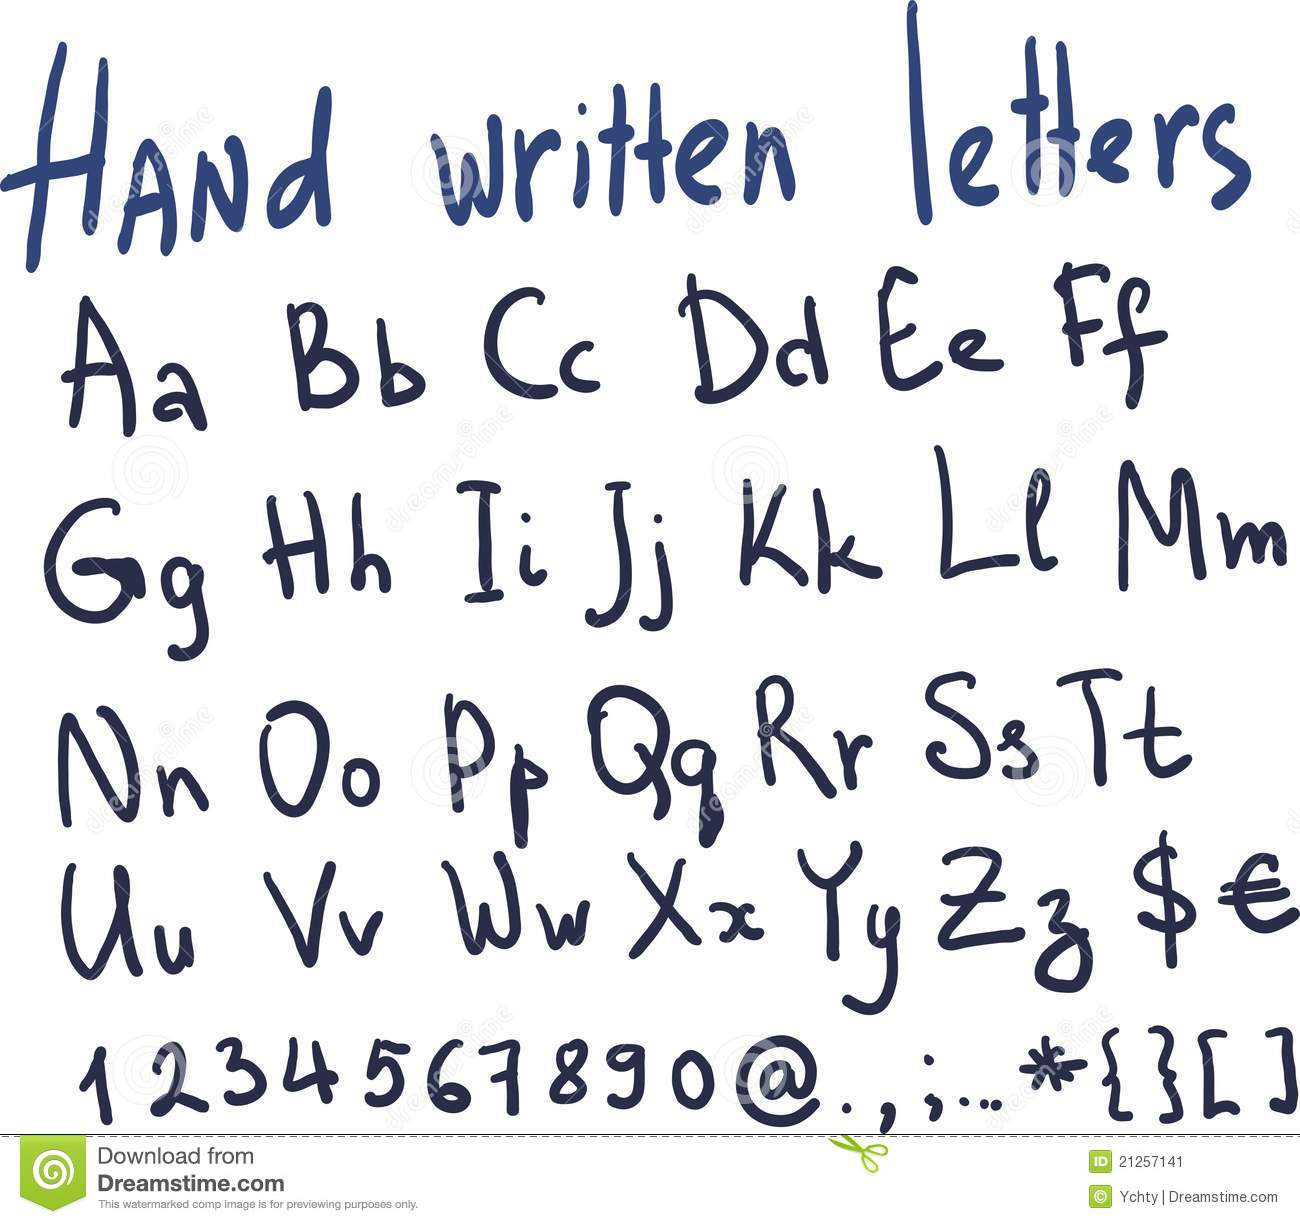 how do you write a z in cursive Practice cursive letters a-z with our cursive handwriting worksheets from a to the mysterious cursive z, you'll be an expert cursive writer when you're done.